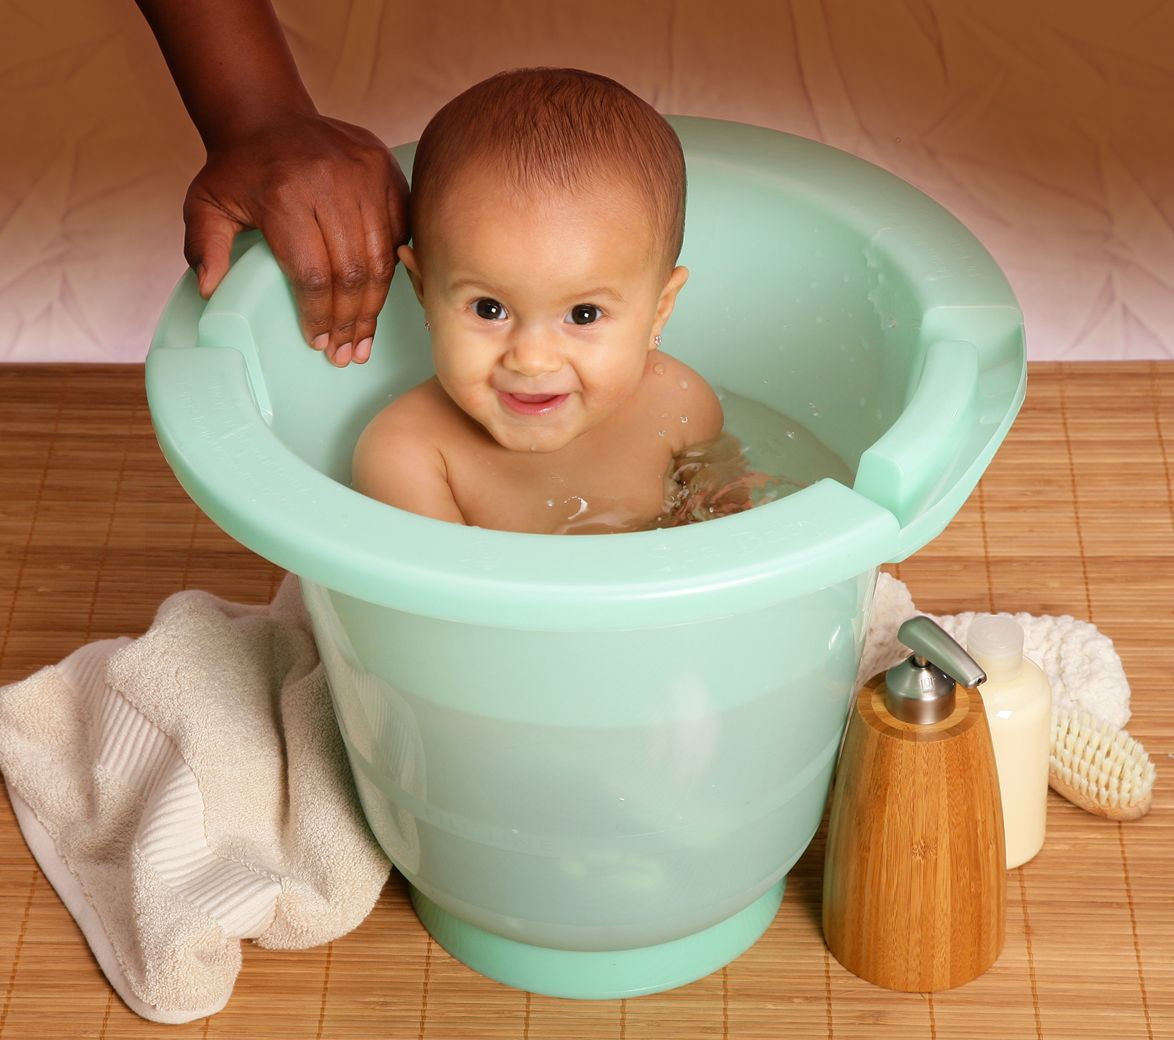 Life More Simply: Spa Baby Eco European Bath Tub Review & Giveaway!